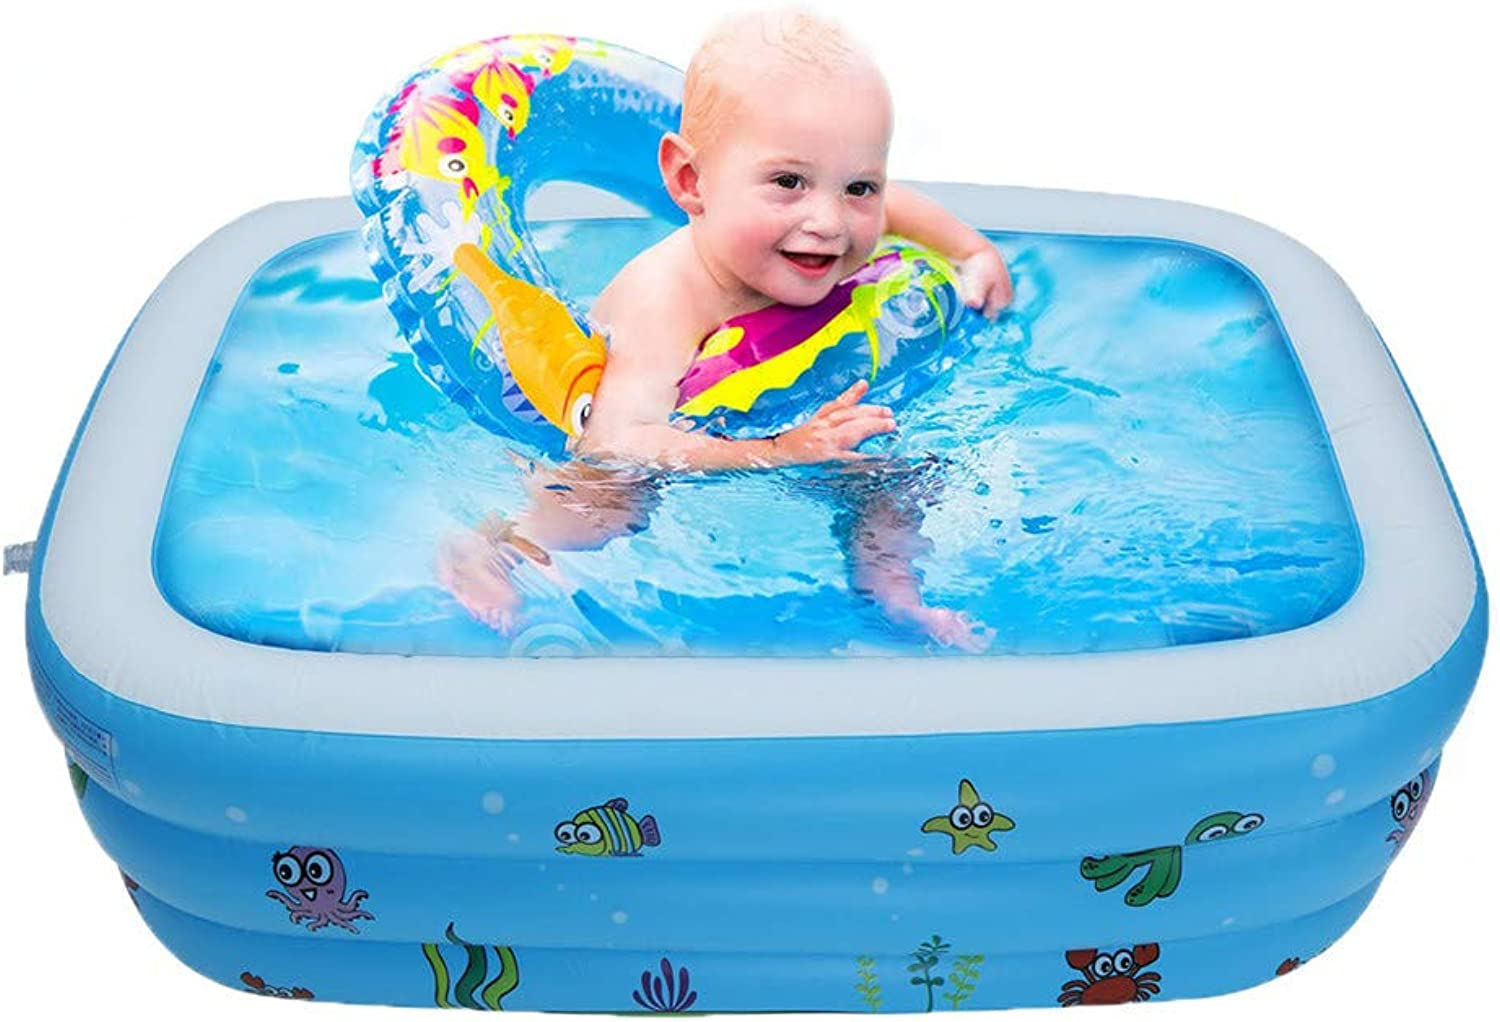 Chezaa Inflatable Family Swimming Pool, Outdoor Squirt & Splash Play Water Fun in Summer for Toddlers Kids, Small Medium Large, bluee (Rectangular Ocean Theme) (A)